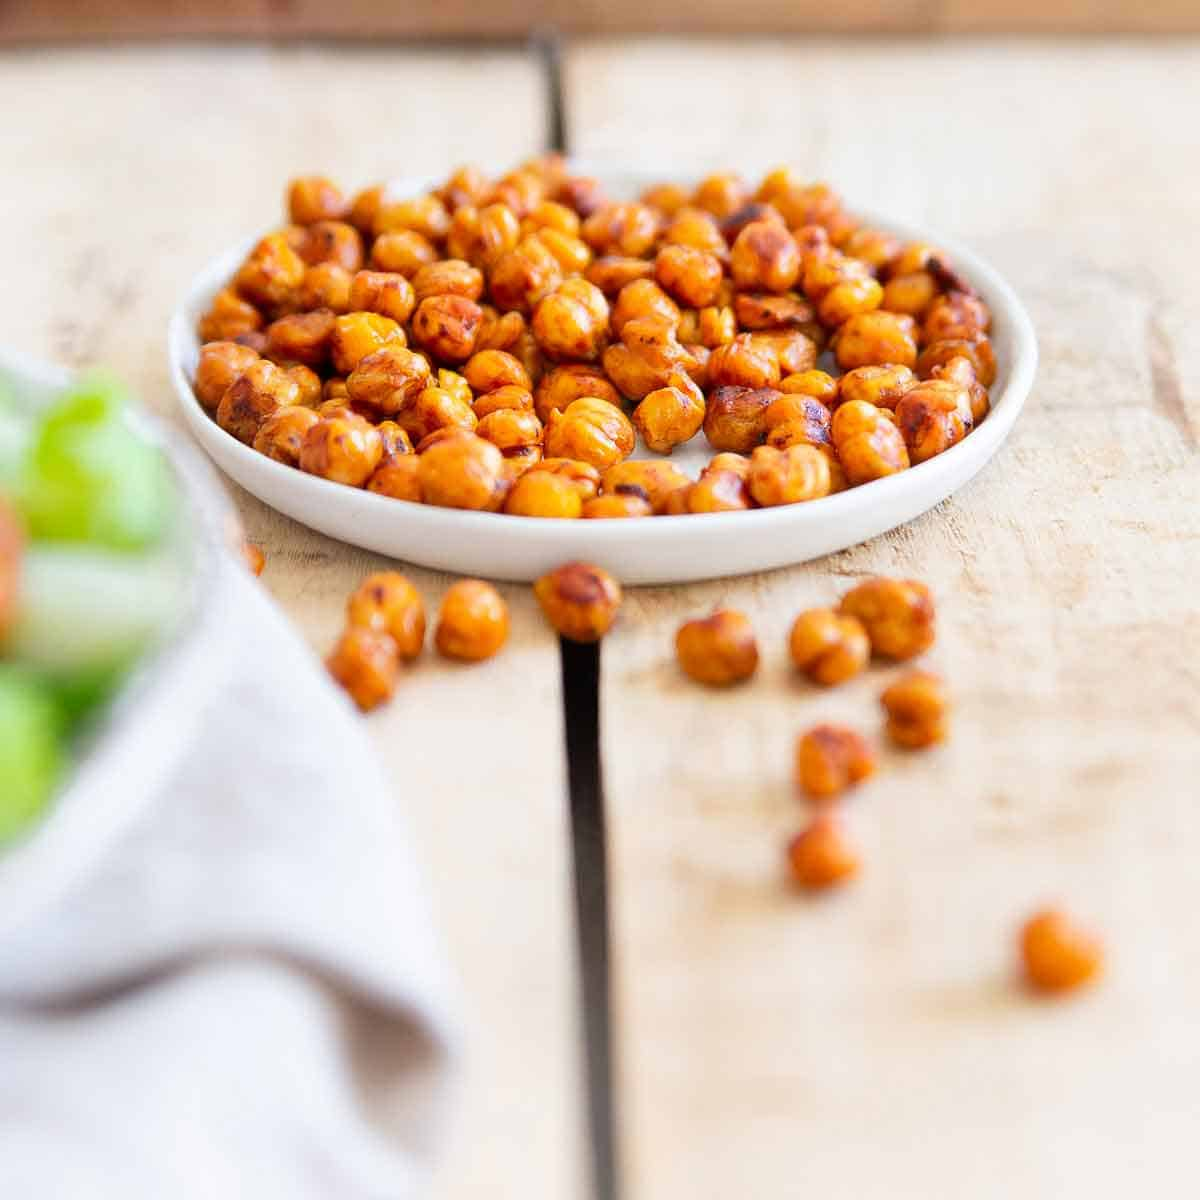 These crunchy roasted BBQ chickpeas are great for healthier snacking or adding to salads for some texture and delicious flavor.